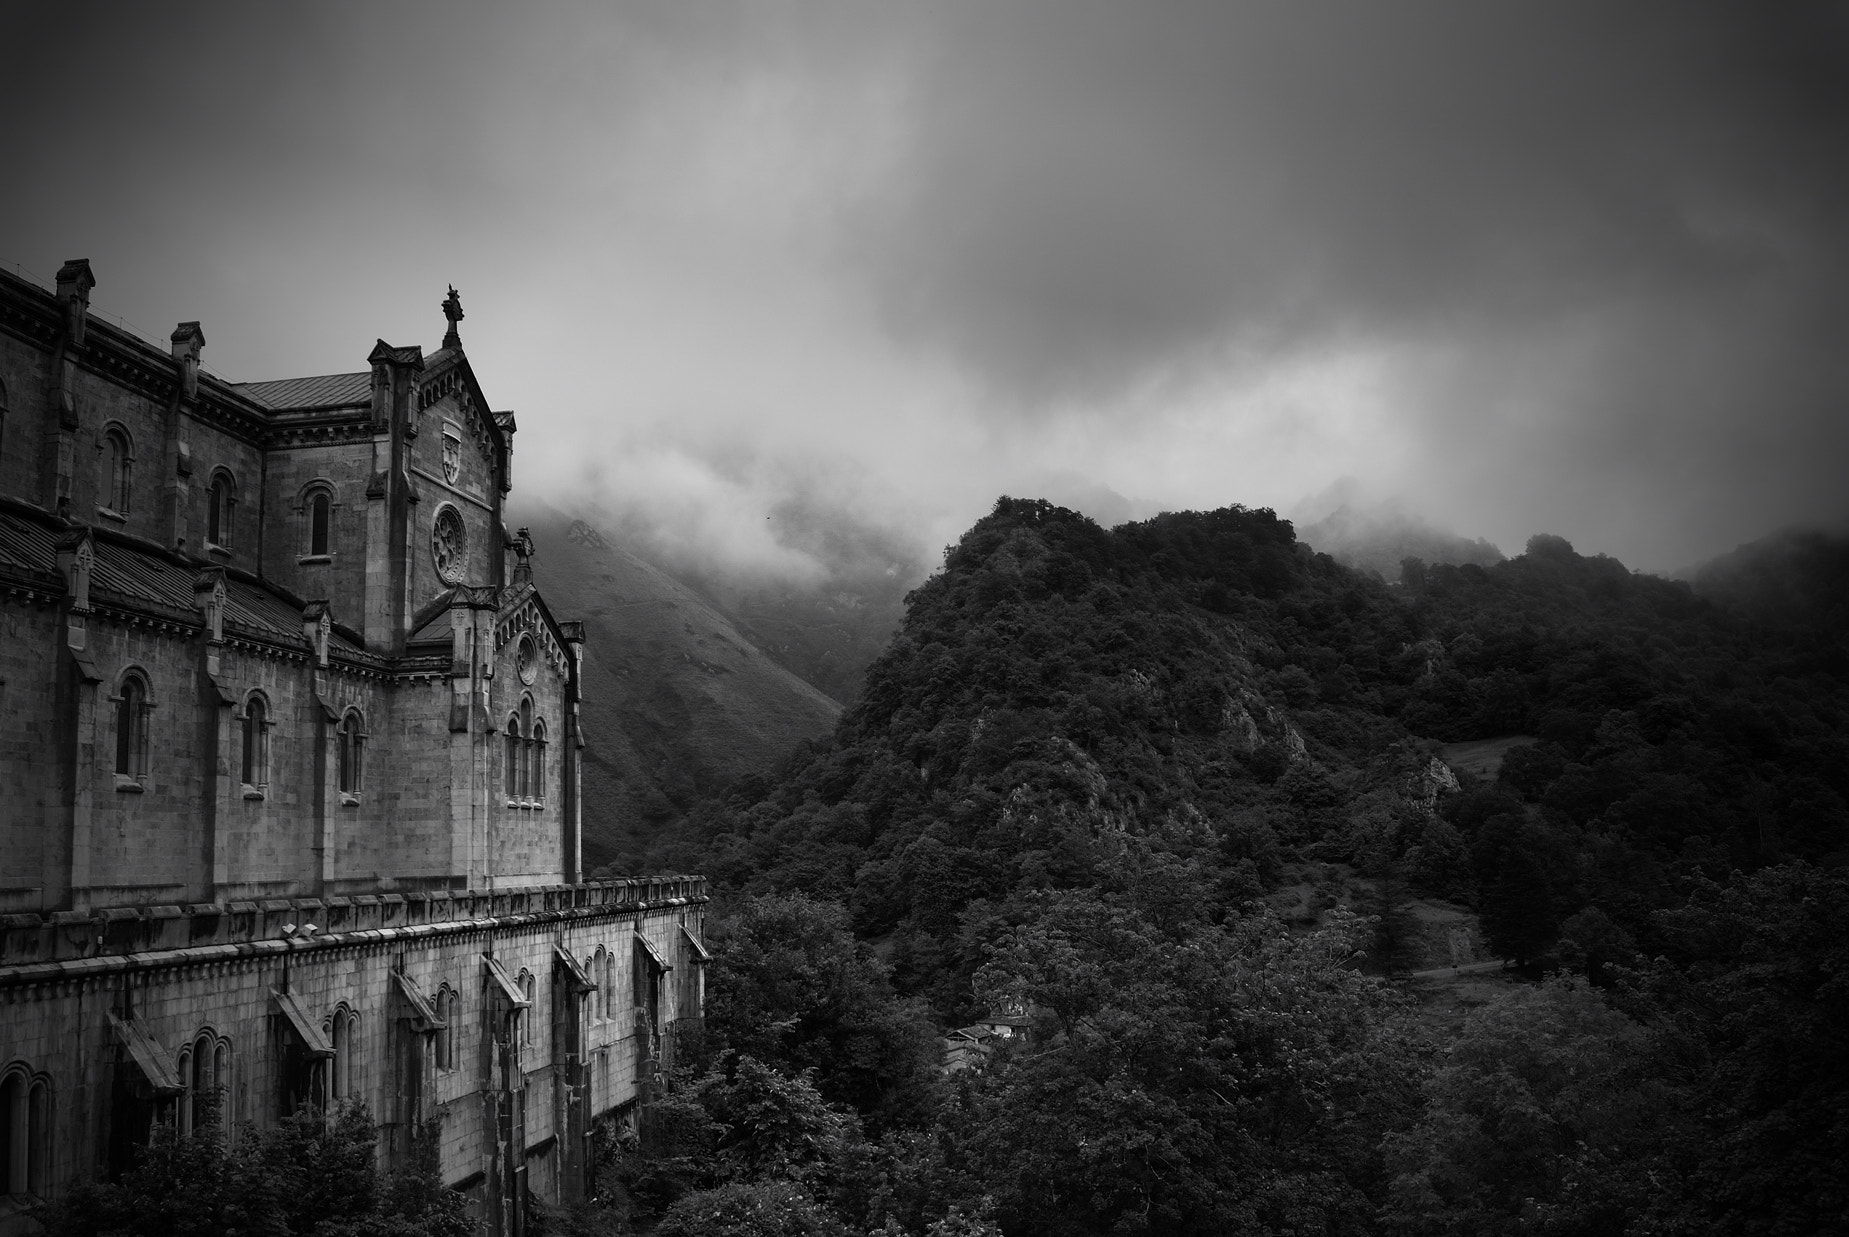 Photograph Basílic of Covadonga by Raúl González on 500px